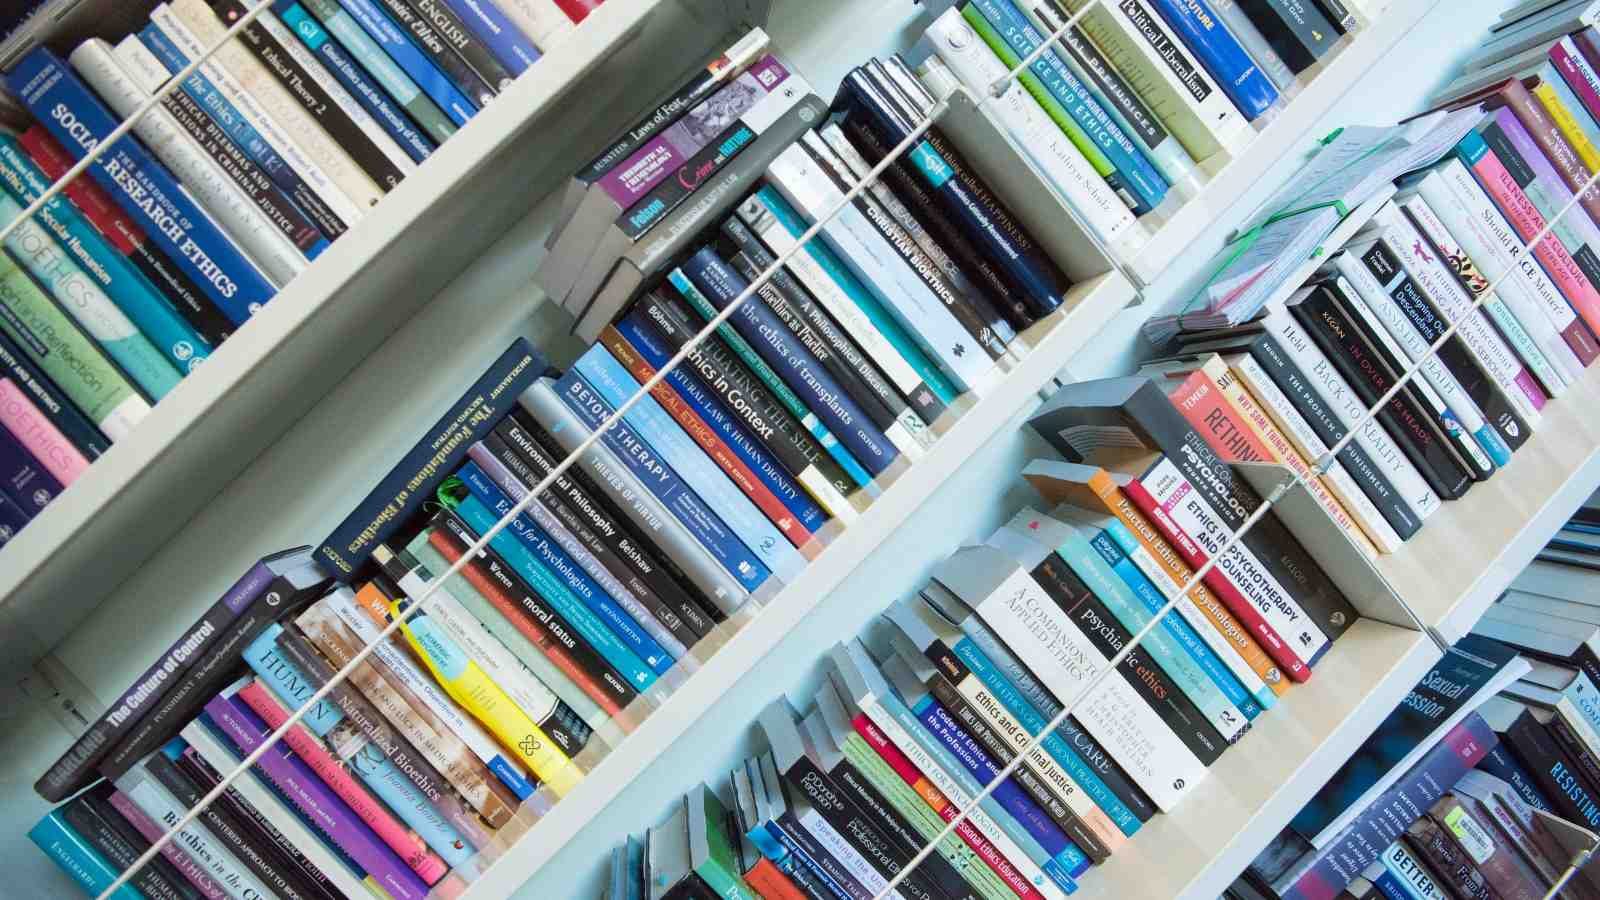 theoretical psychology books on a shelf